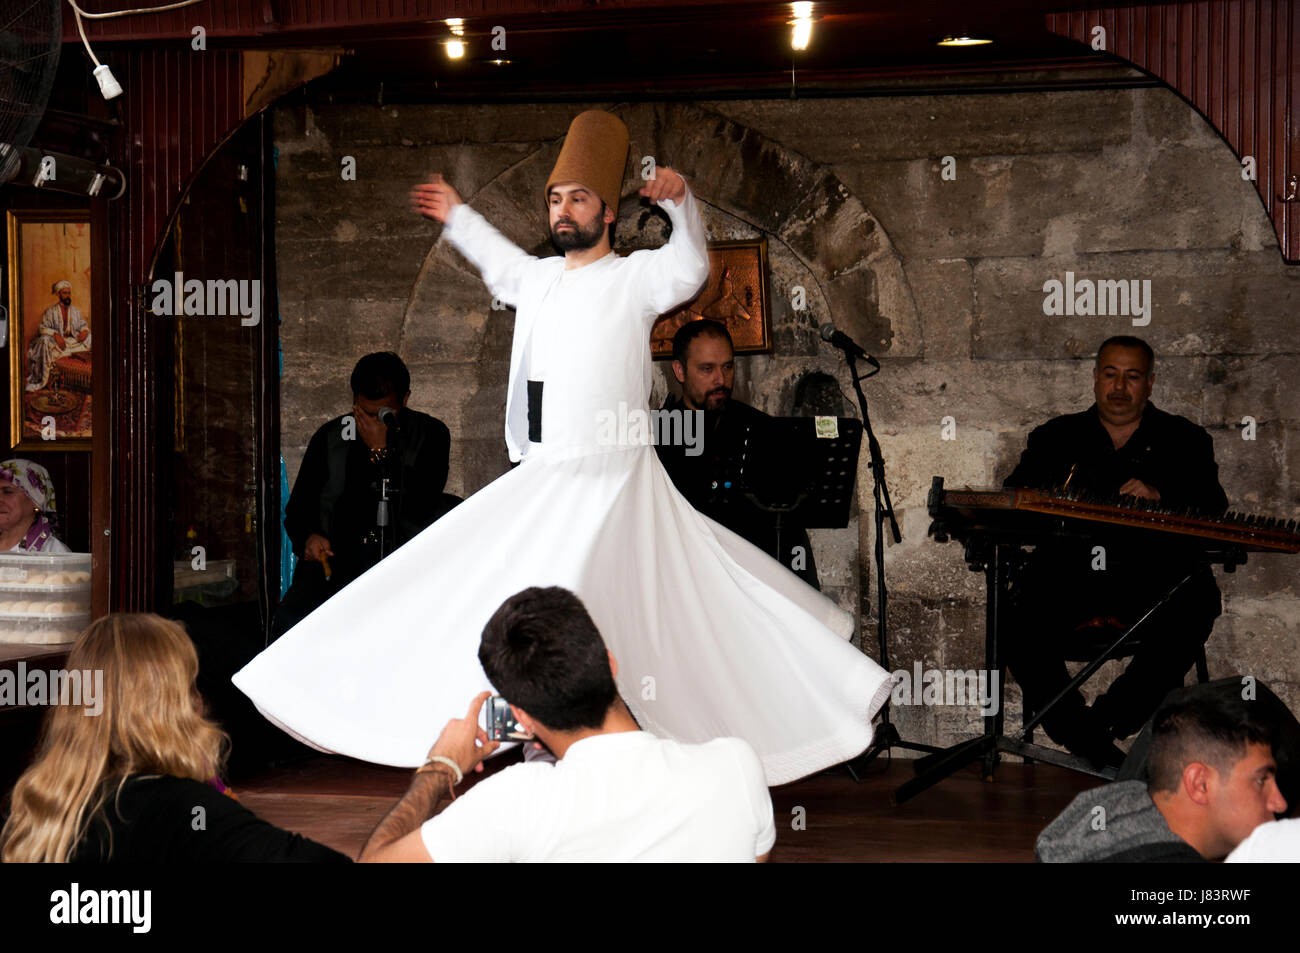 Istanbul, Turkey - May 7, 2017: The dance Whirling Dervishes is called Sema while peoples watch him - Stock Image